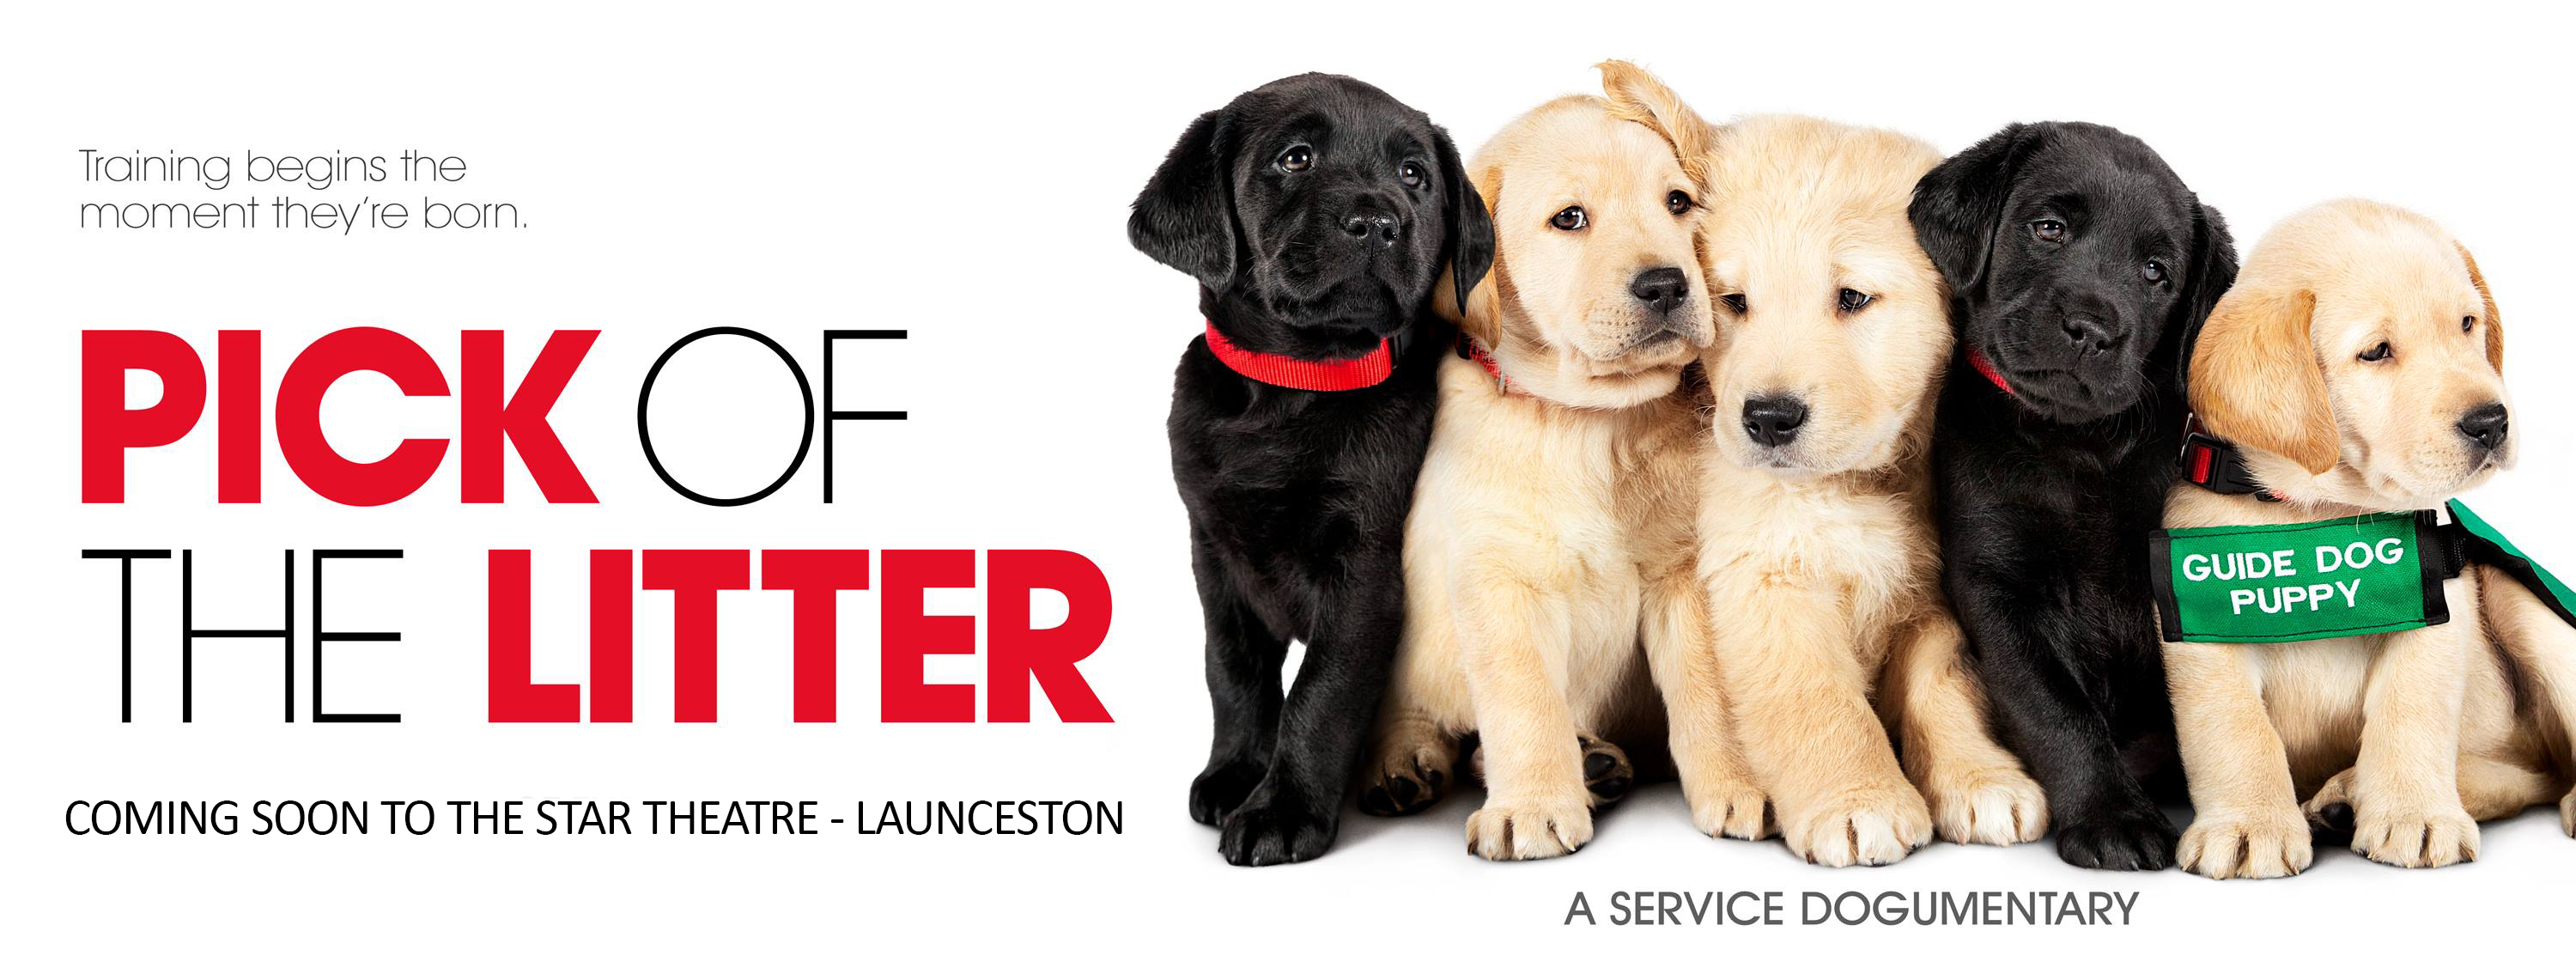 Pick of the litter movie graphic